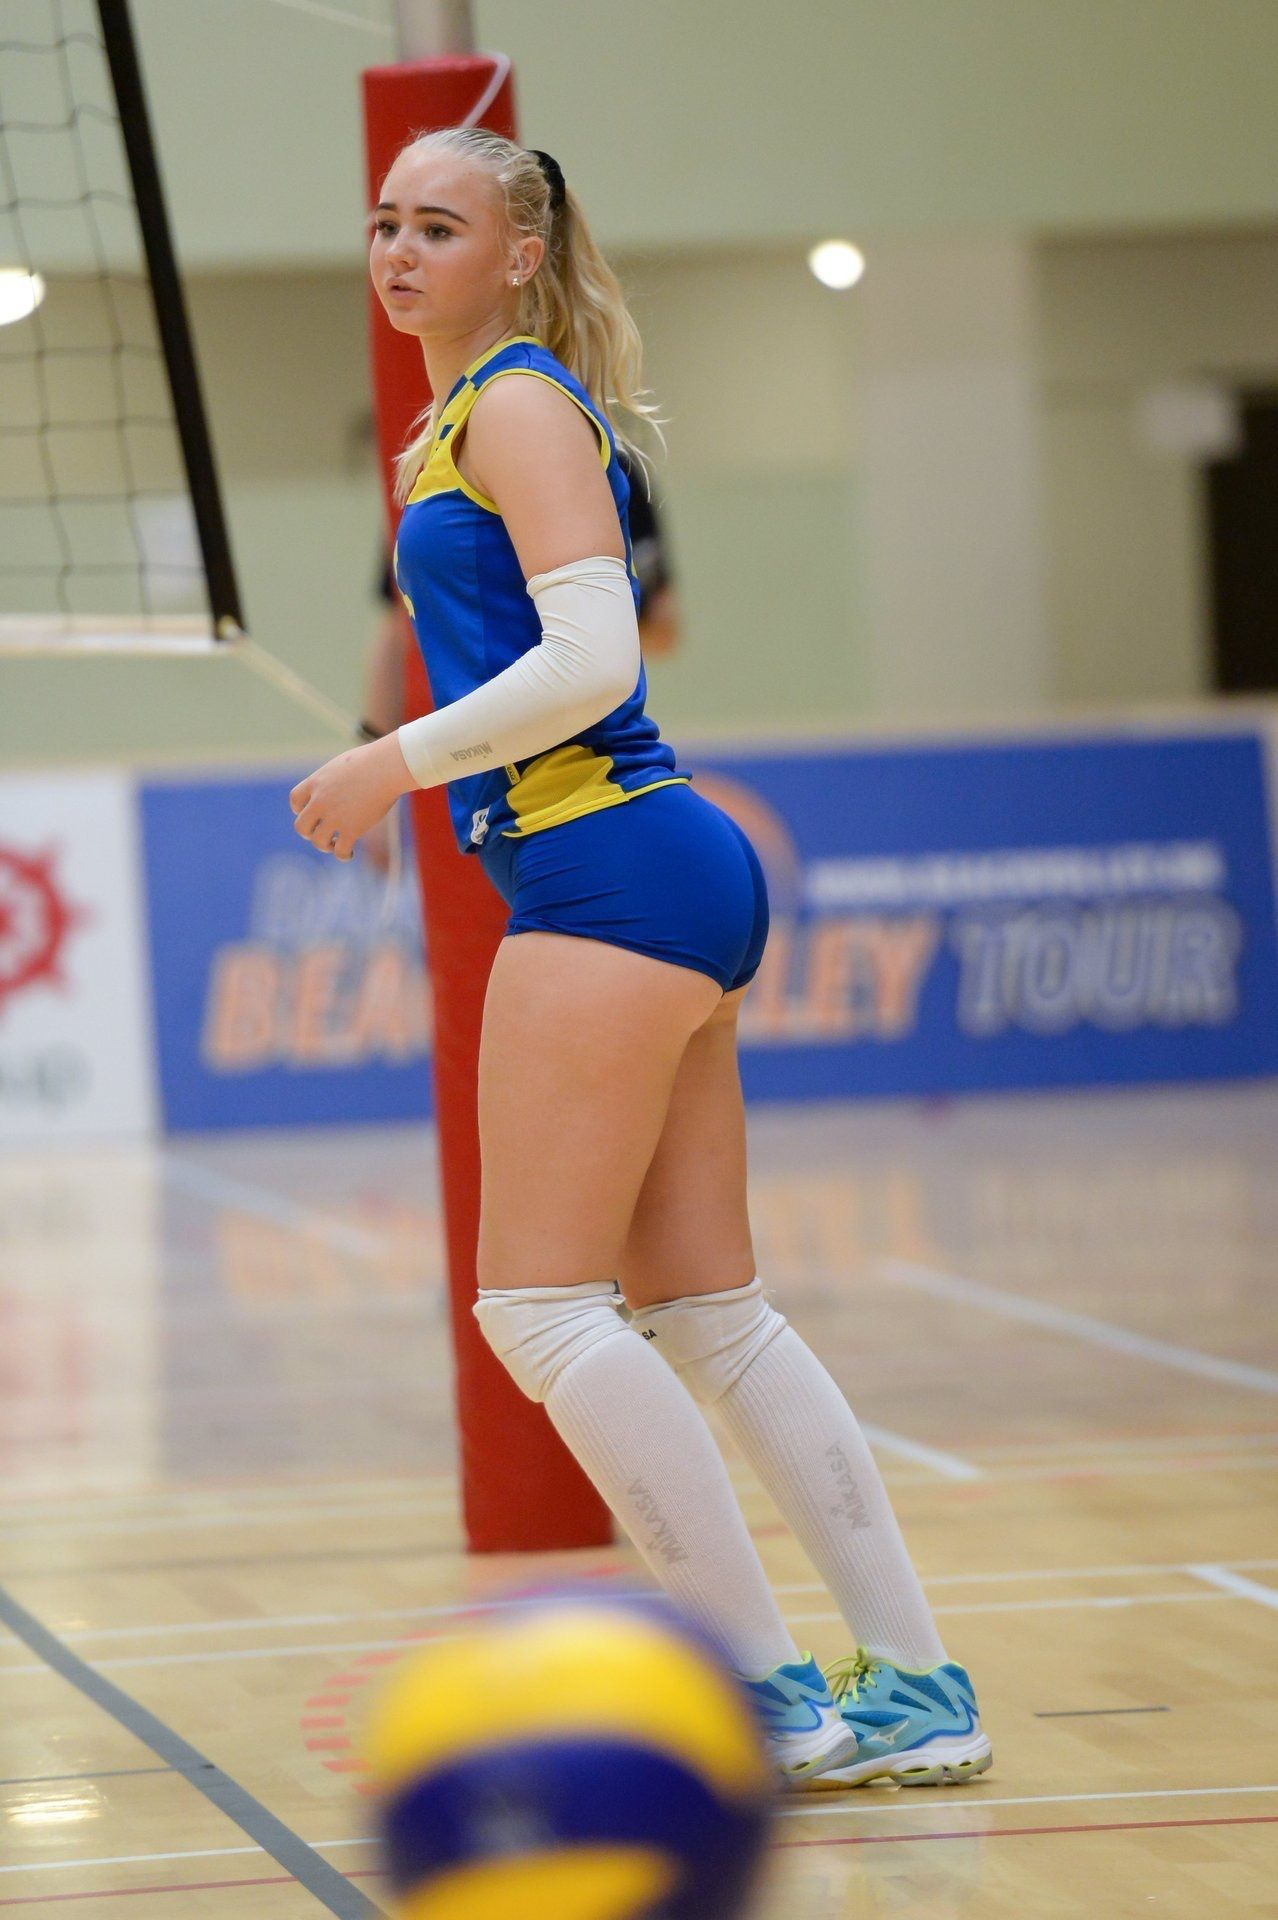 Pin On Volleygirls